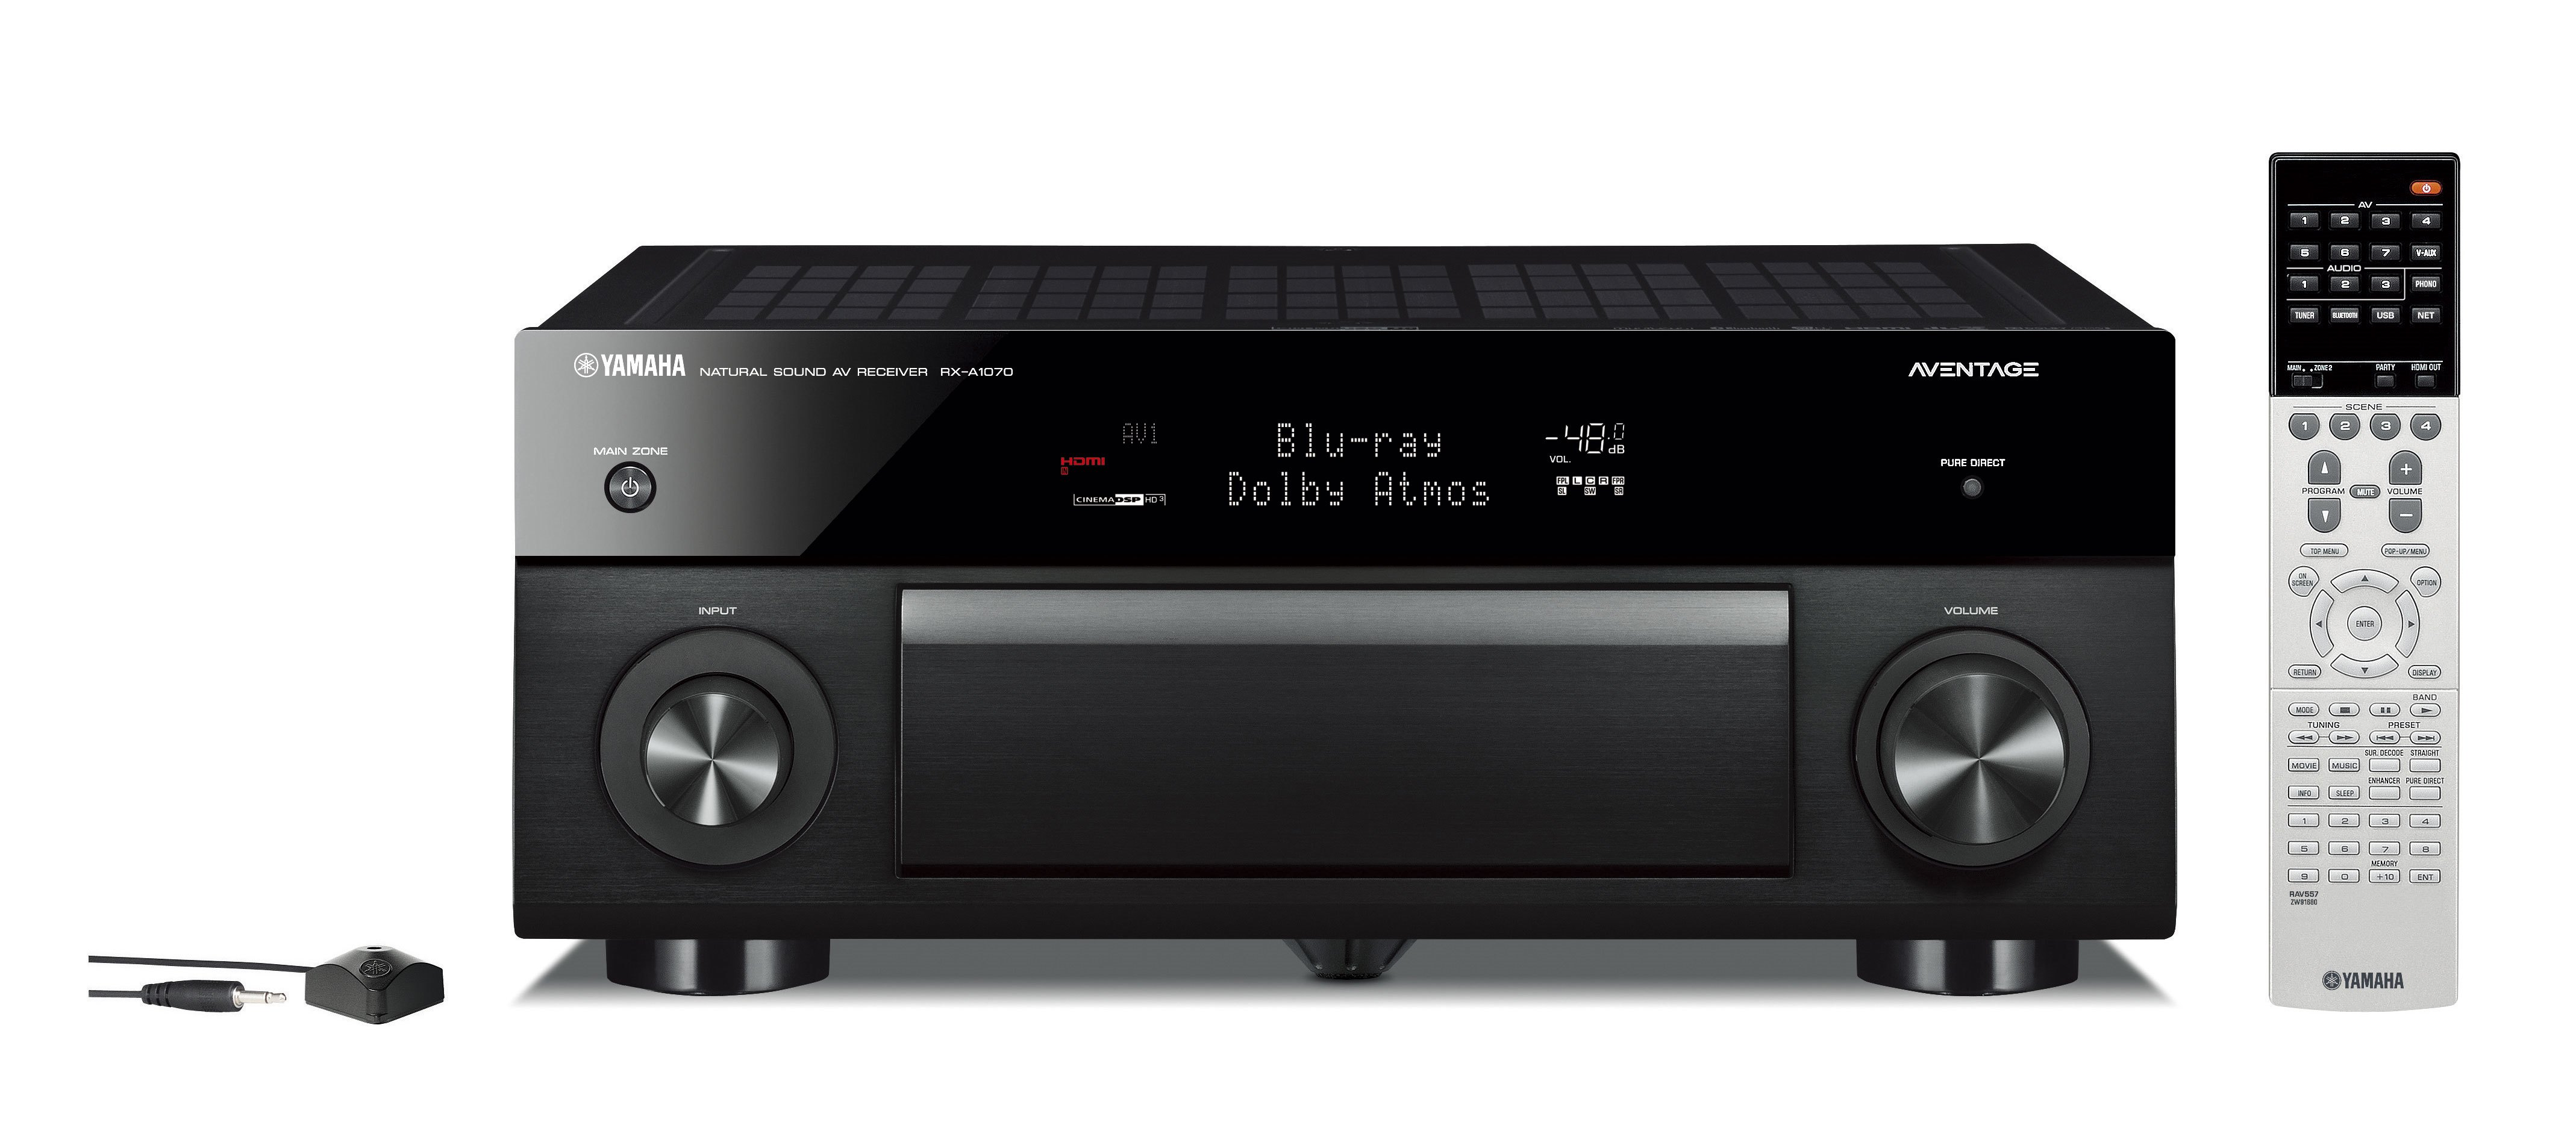 Rx A1070 Overview Av Receivers Audio Visual Products Rs232 Wiring Diagram For Surround Discontinued